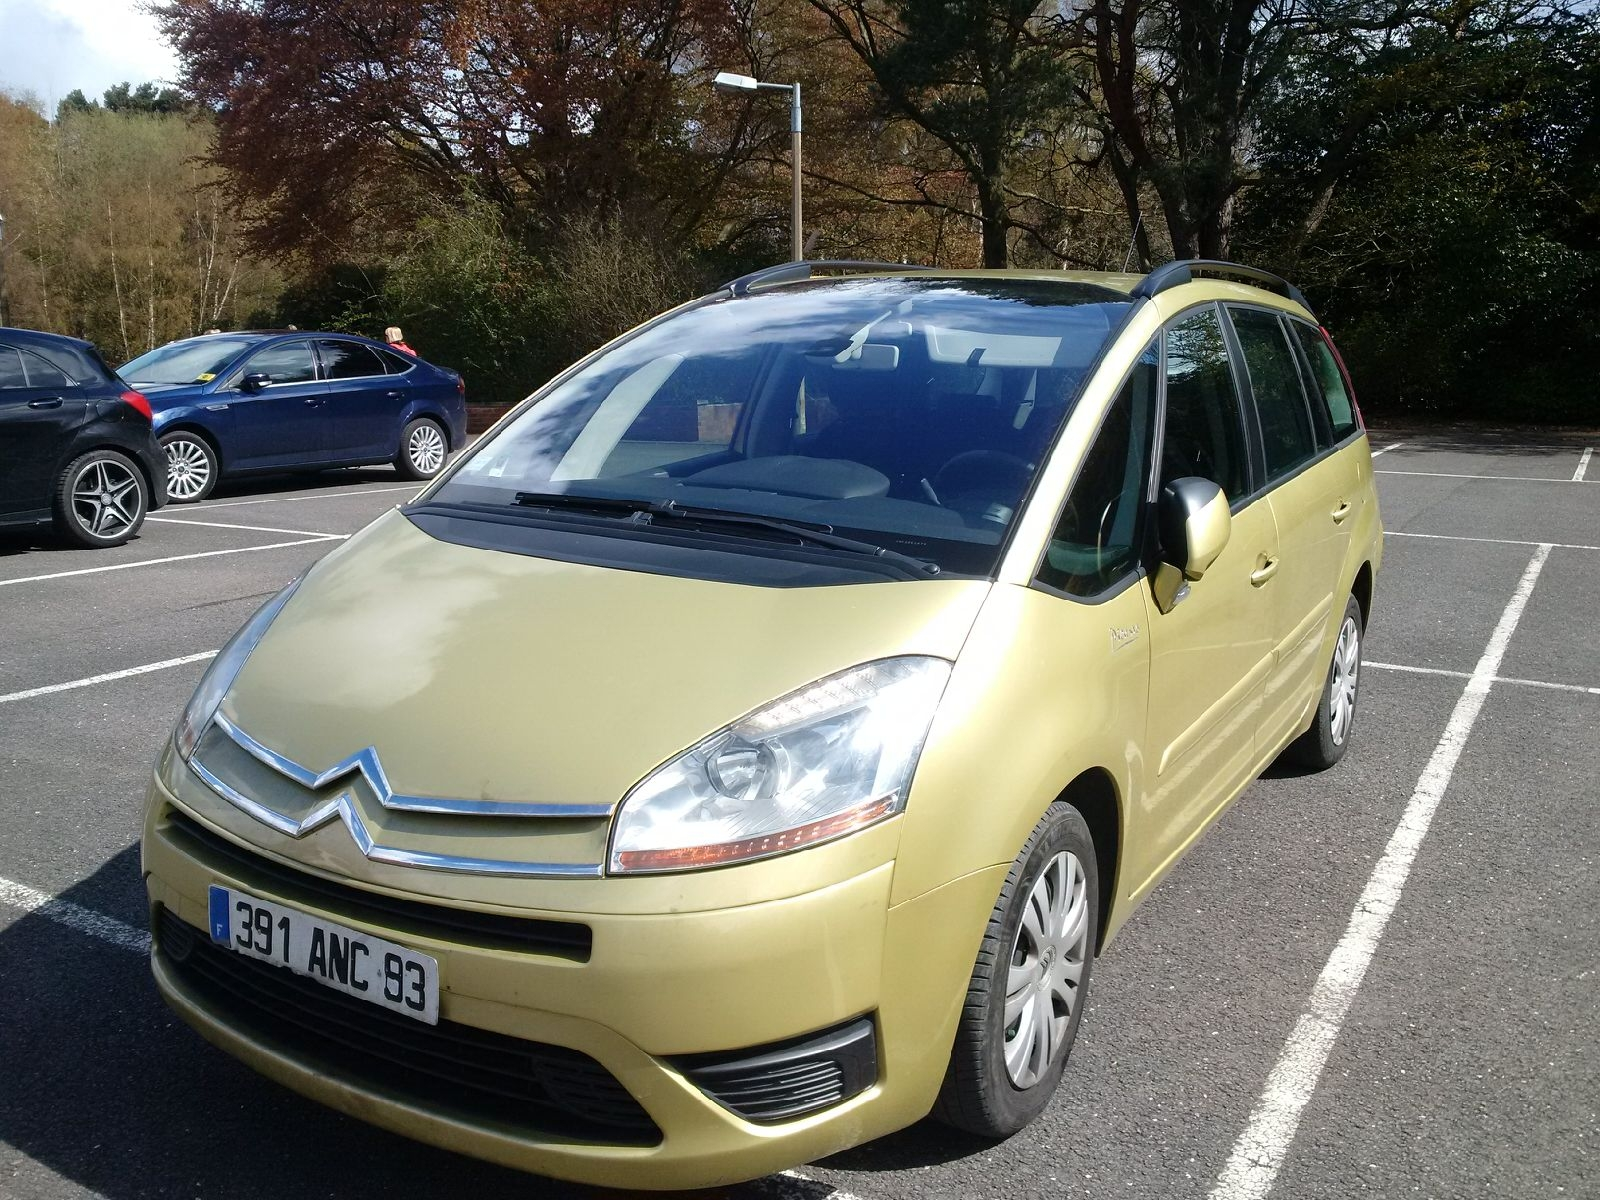 lhd CITROEN C4 GRAND PICASSO (10/2008) - METALLIC GOLD - lieu: